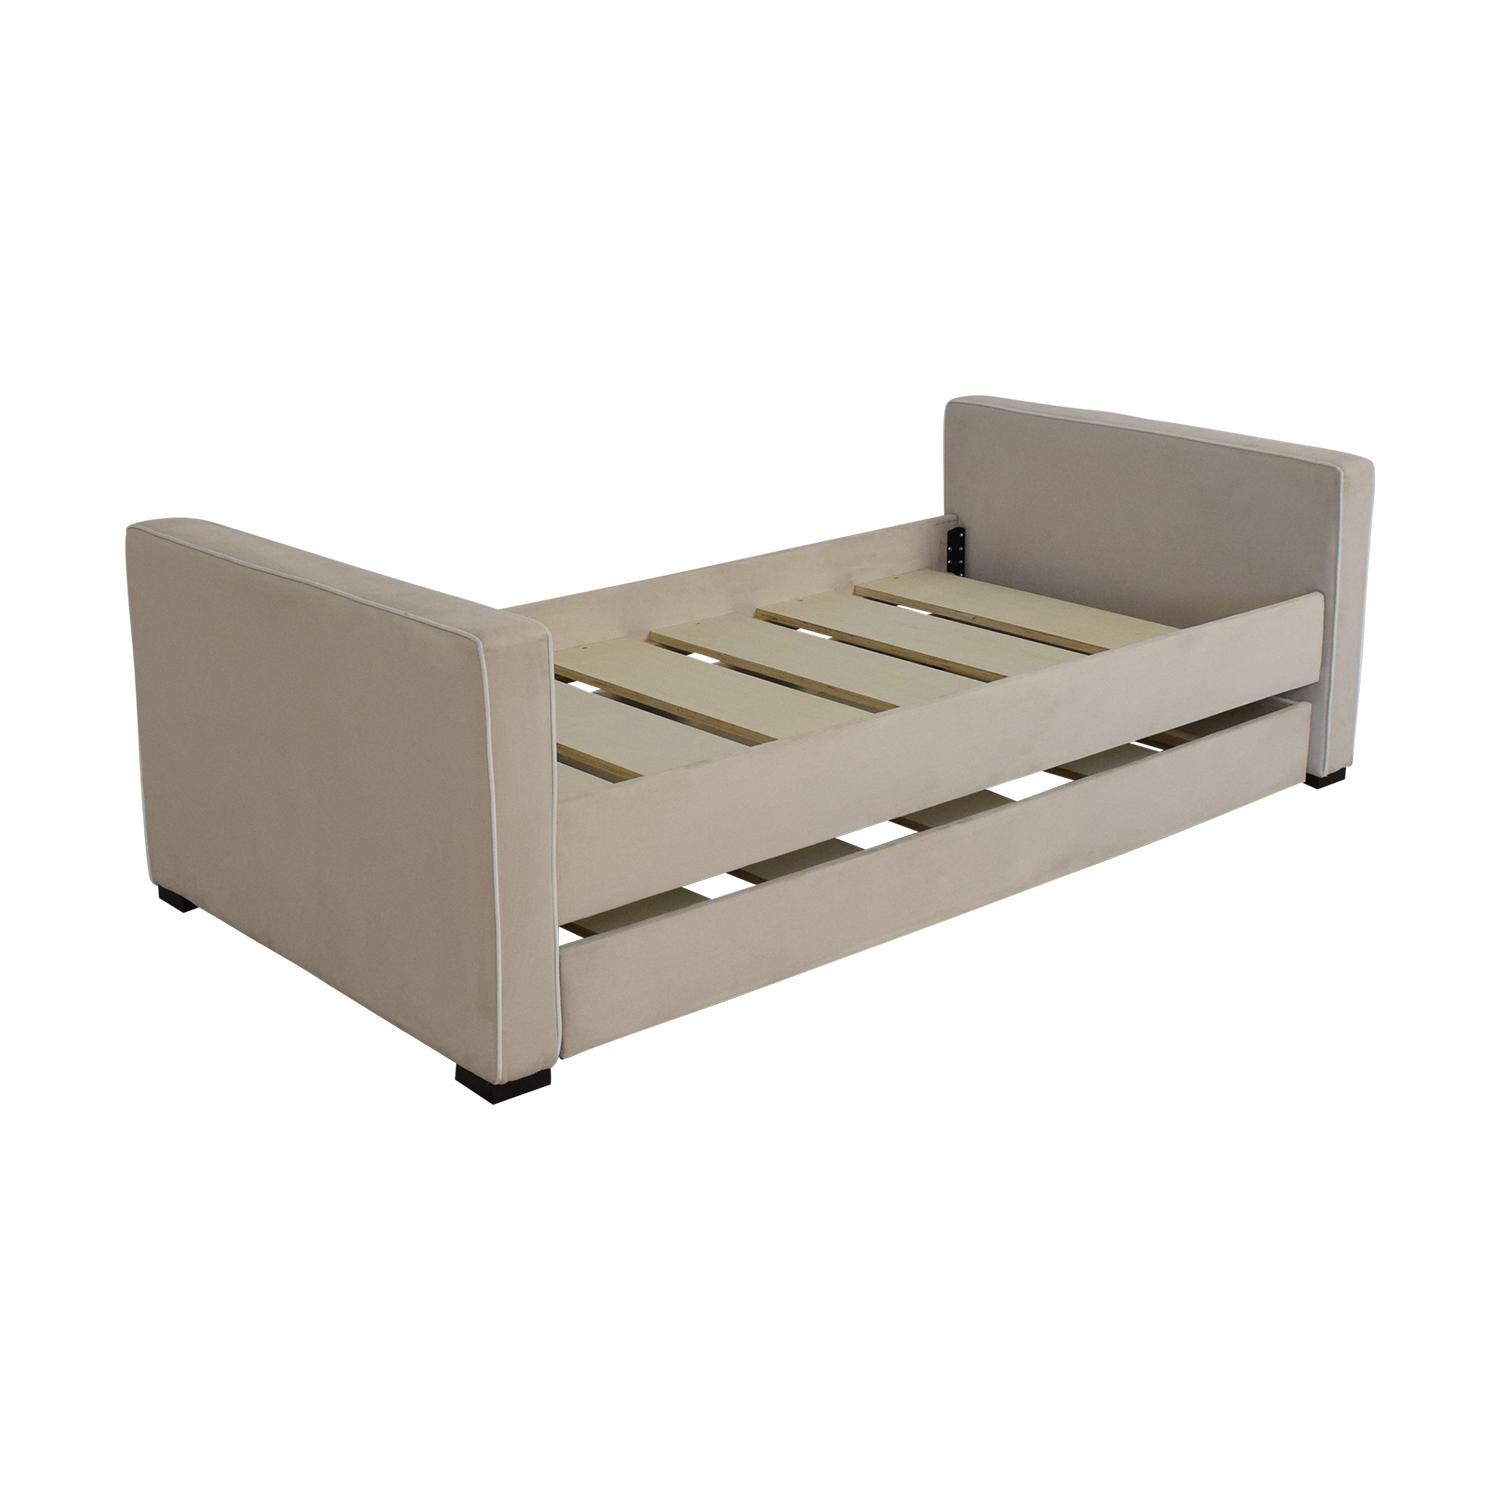 shop Monte Design Dorma Twin Bed With Trundle Monte Design Bed Frames